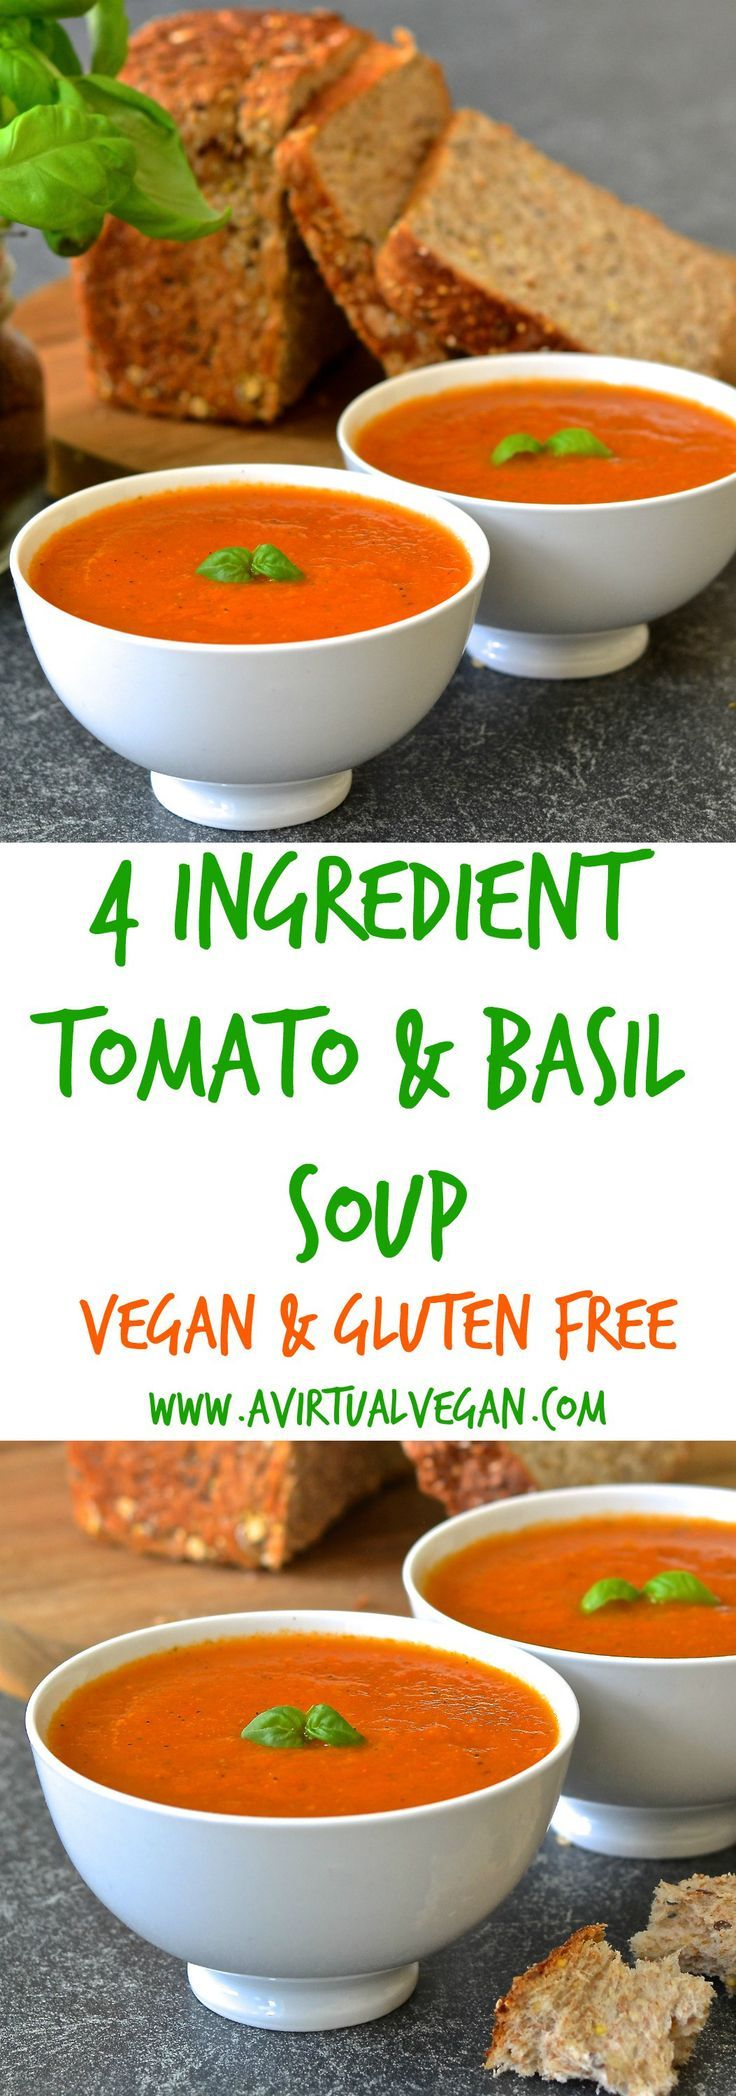 tomato & basil soup #cassiemadeit *I used a mixture of roasted cherry tomatoes, canned diced tomatoes, and canned tomato sauce plus I had to sub dried basil for fresh. I also added in a couple handfuls of spinach. The result was an ok soup. I don't know,